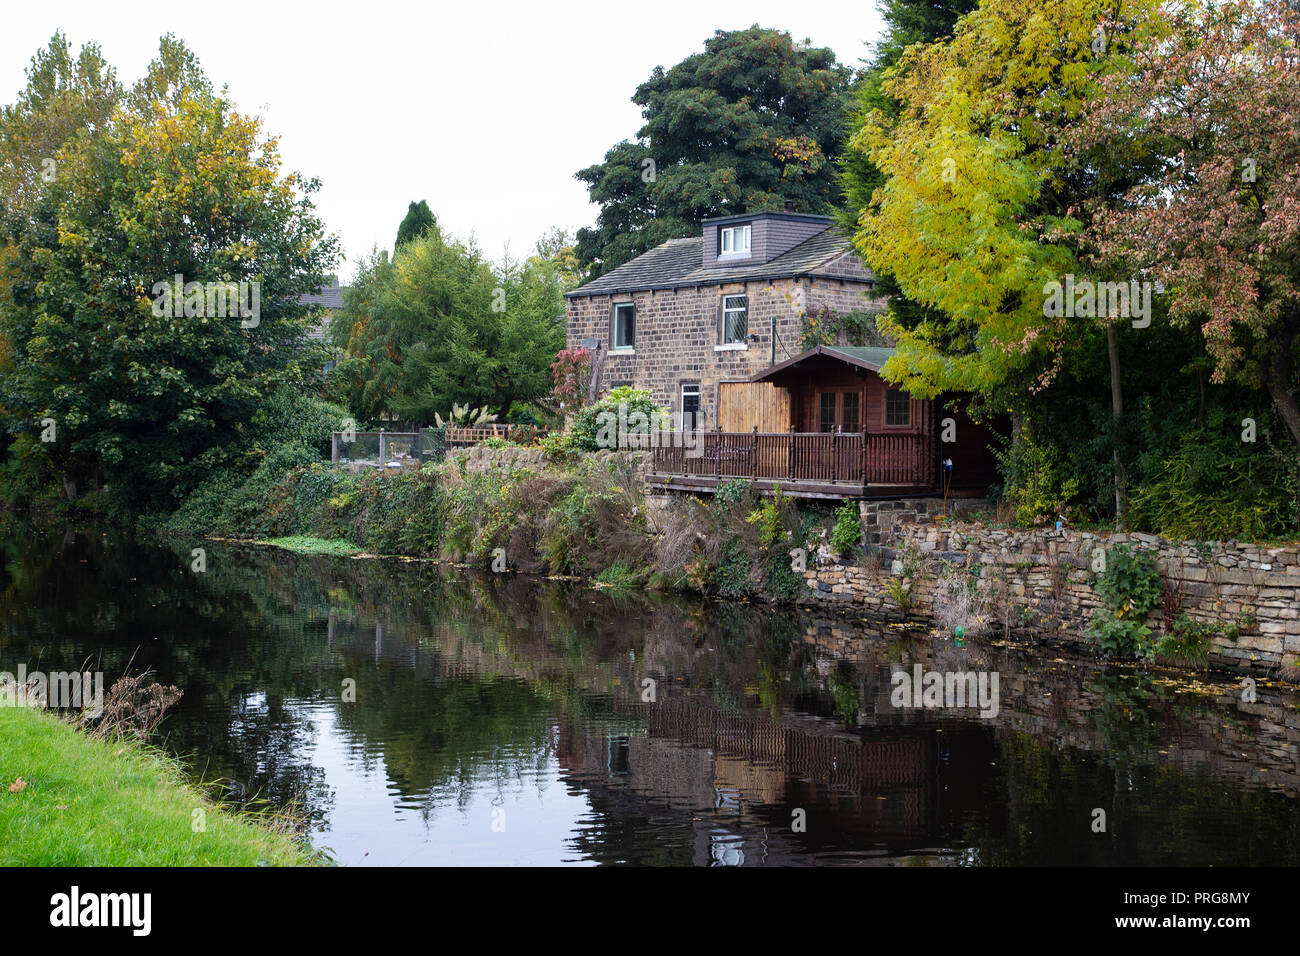 Typical Yorkshire stone built house on the side of the Calder and Hebble canal in Mirfield, West Yorkshire Stock Photo